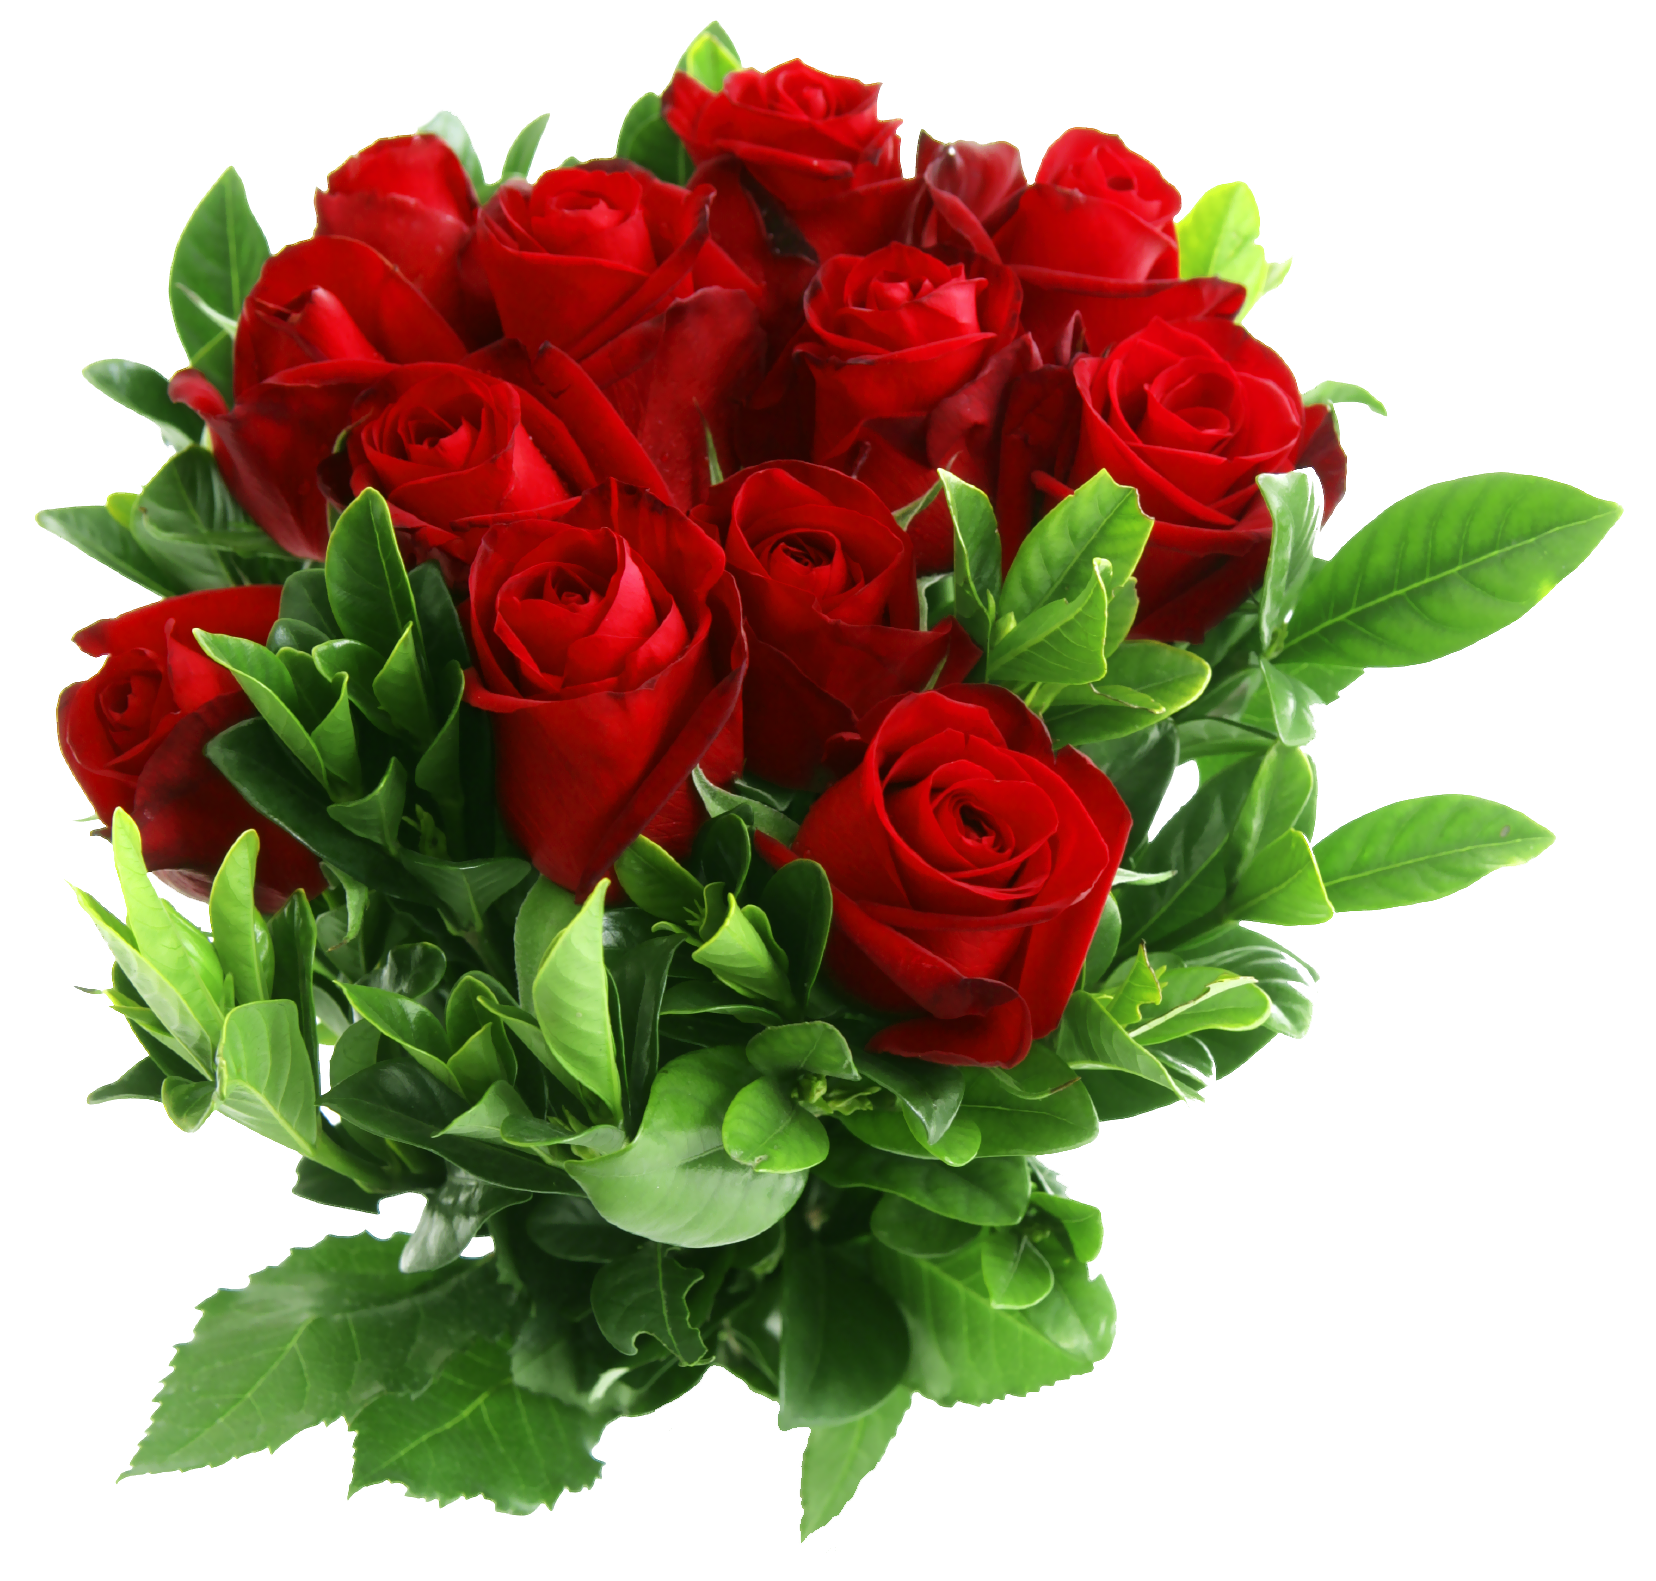 Flower bundle png. Red rose bouquet picture